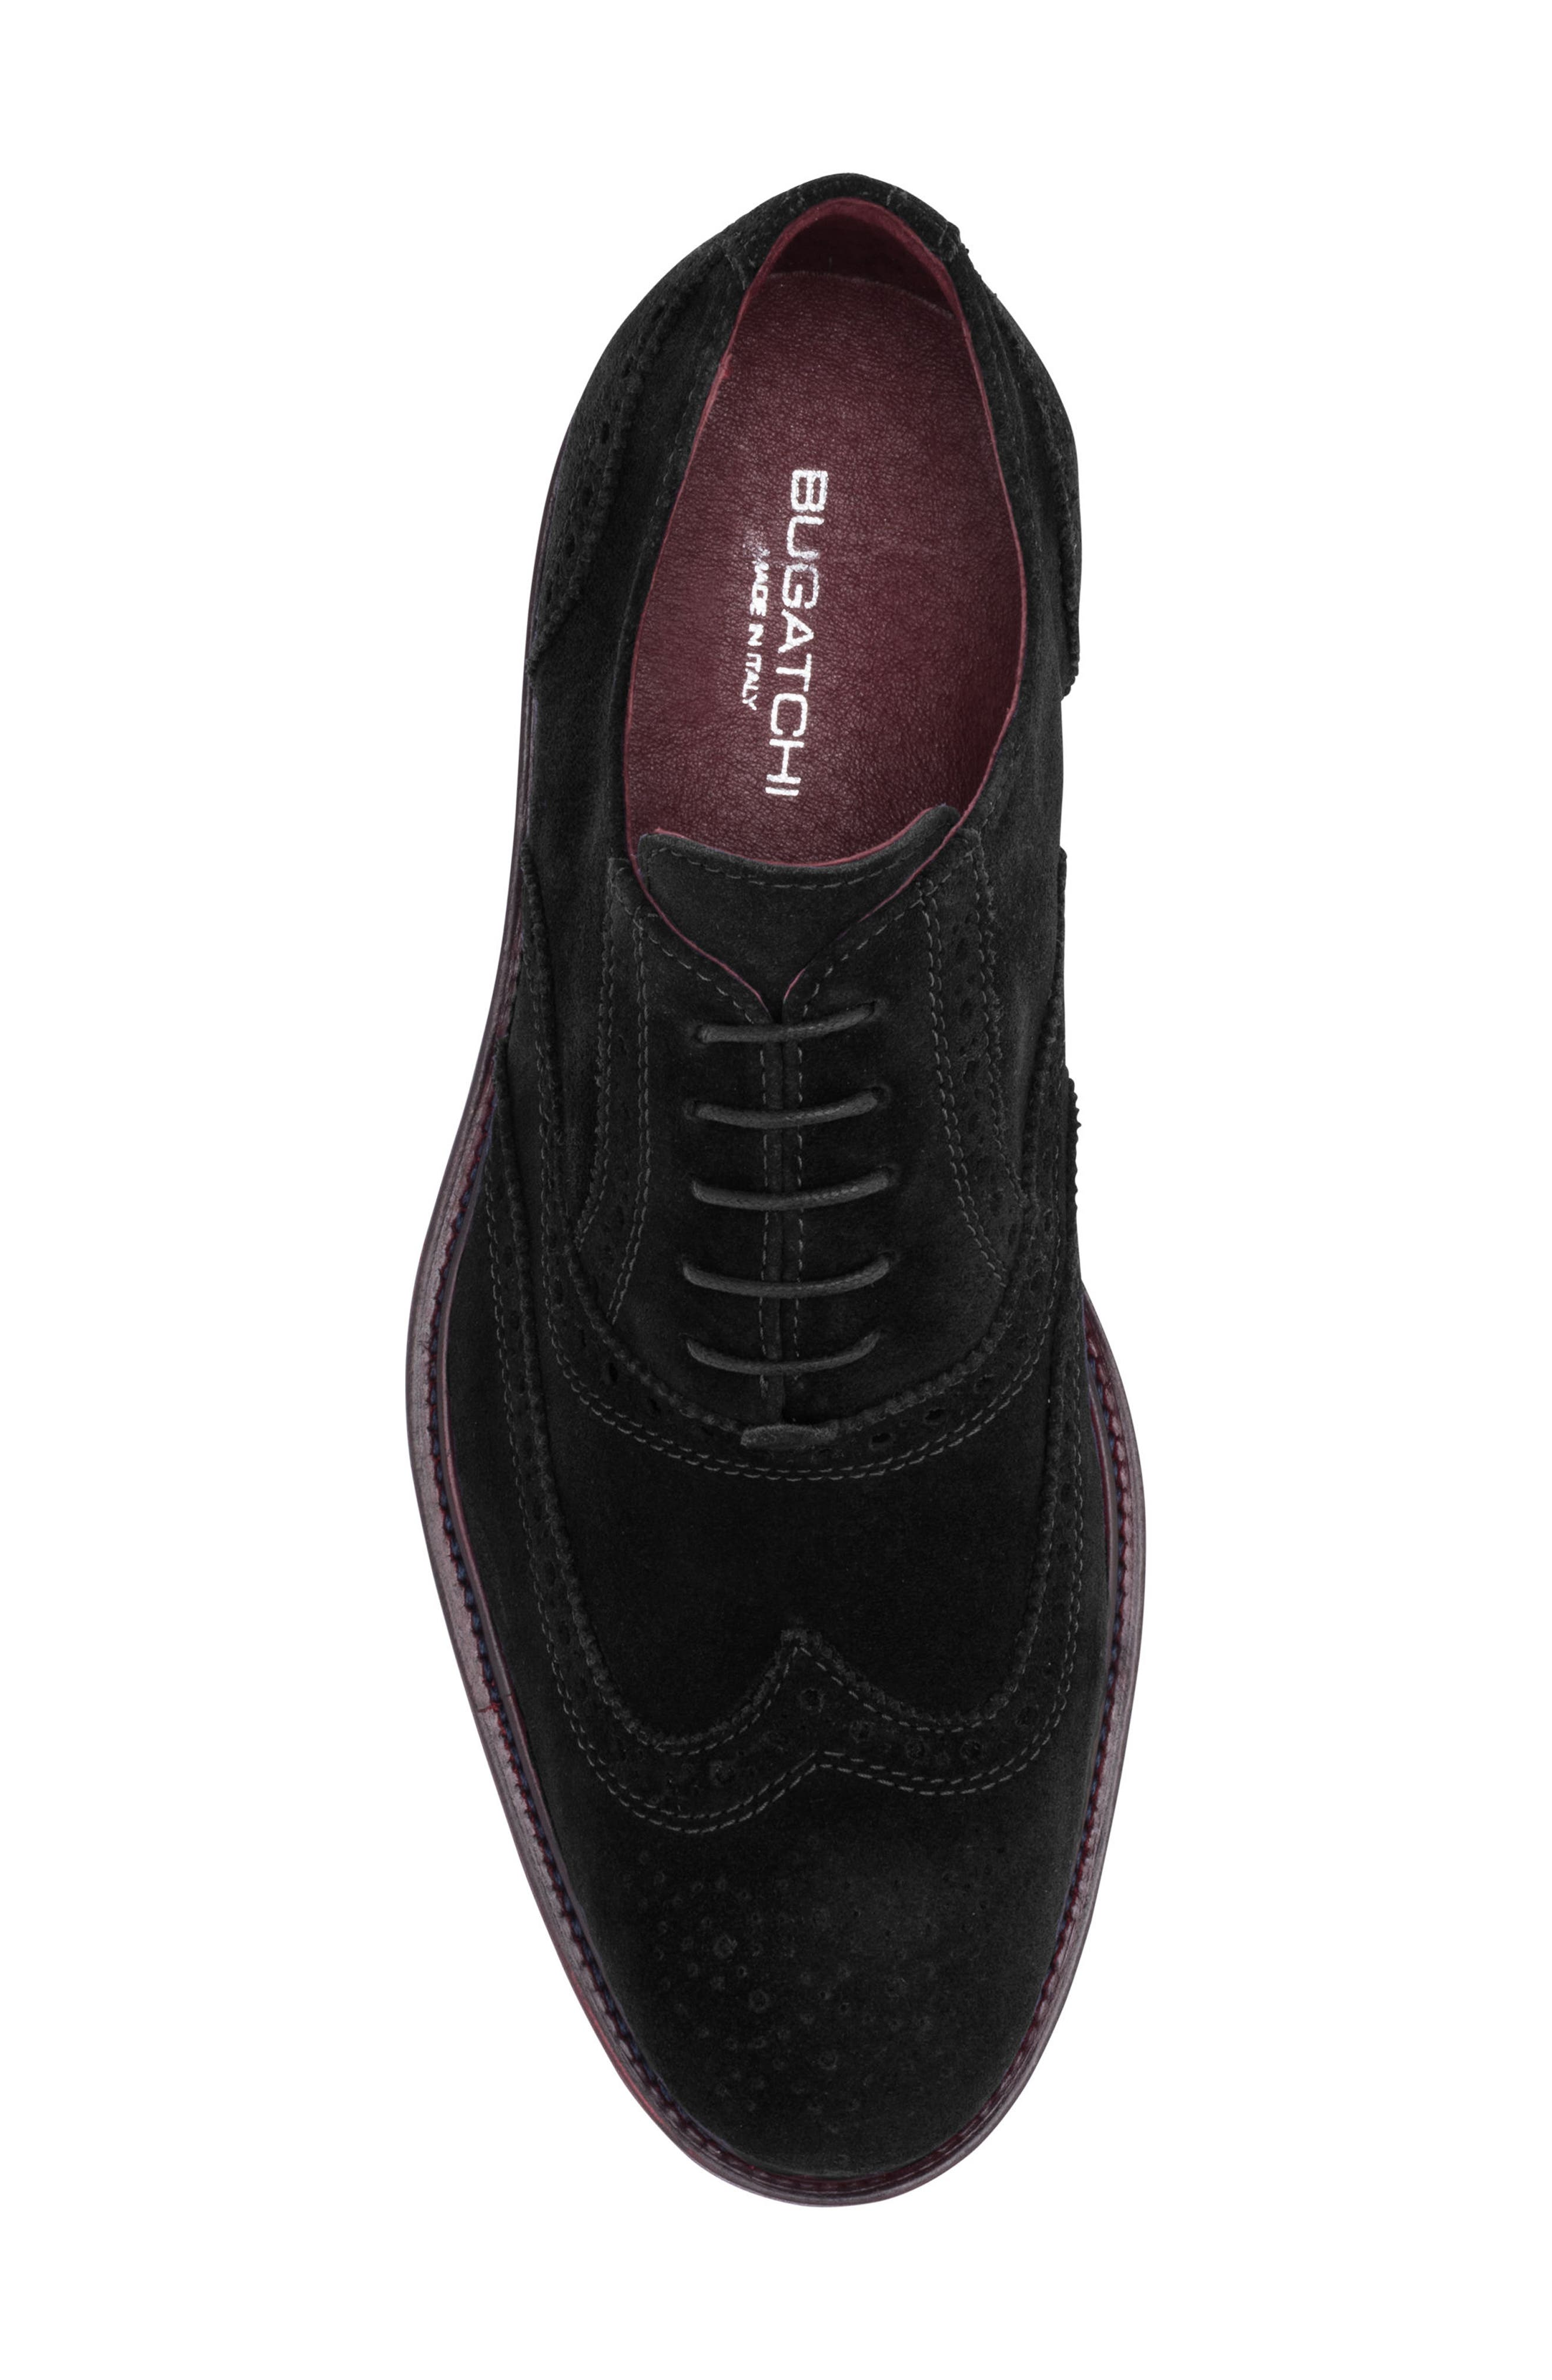 Siena Wingtip,                             Alternate thumbnail 5, color,                             Nero Suede